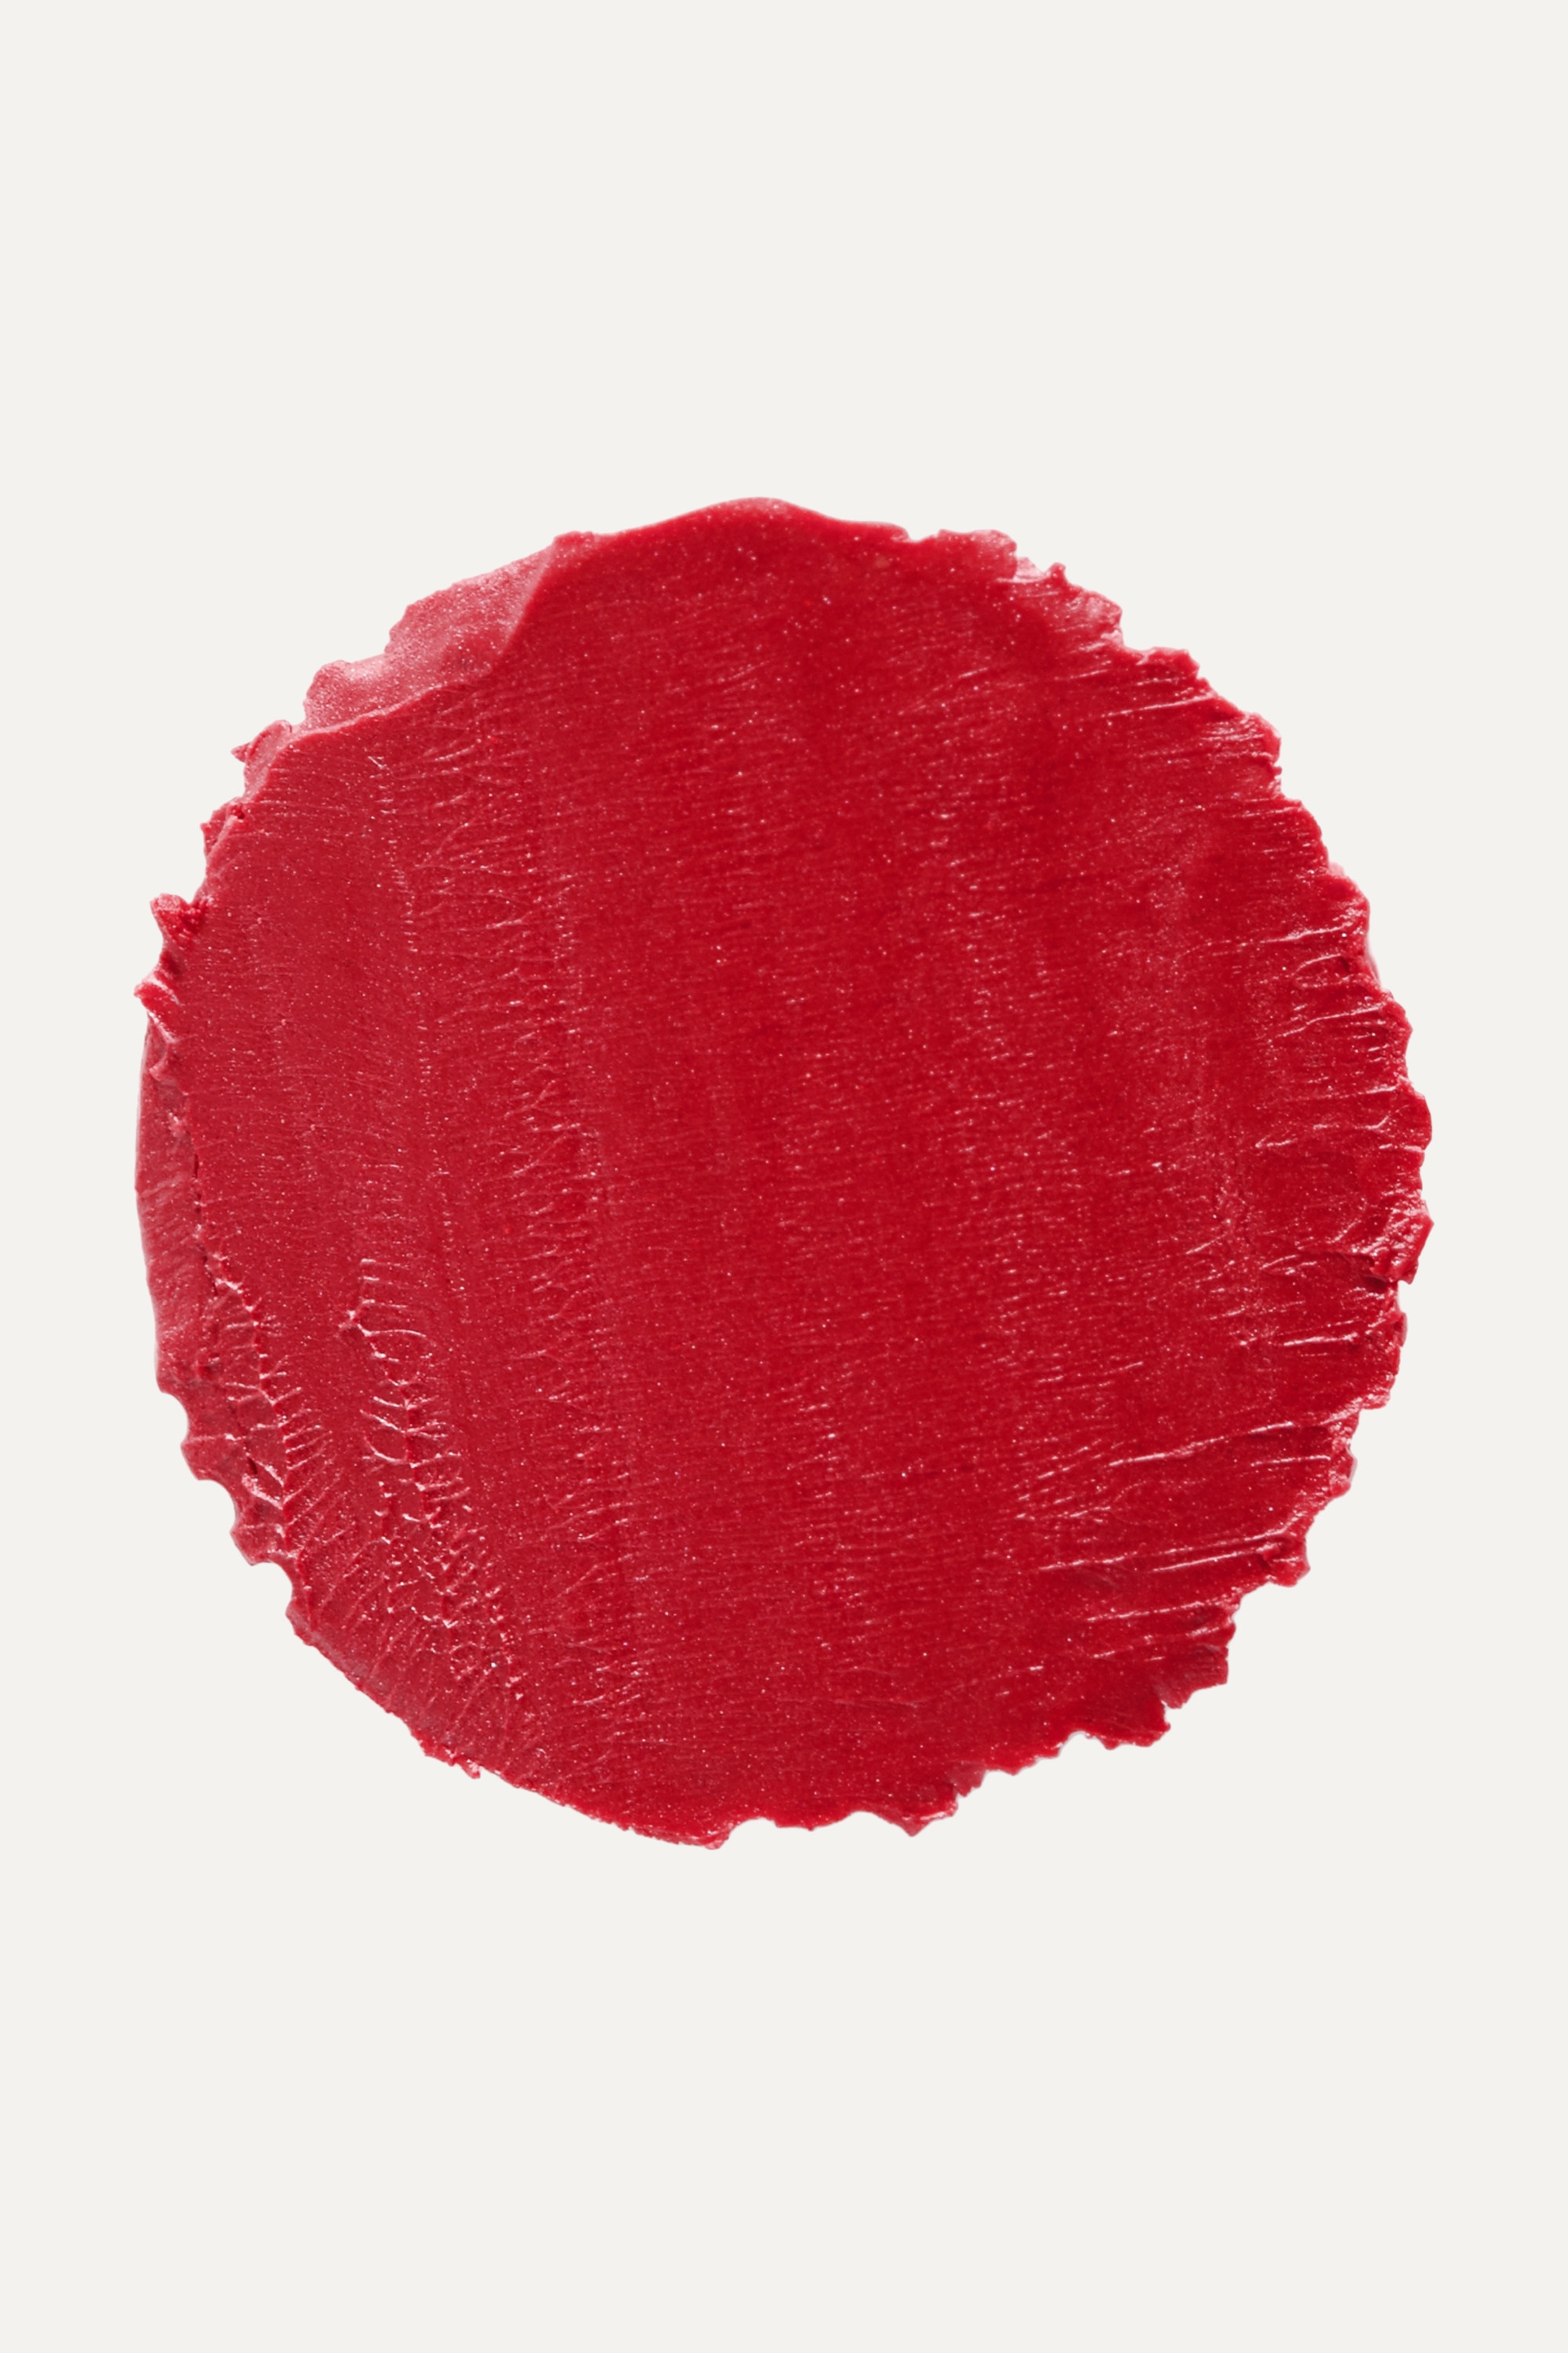 Burberry Beauty Burberry Kisses - Poppy Red No.105